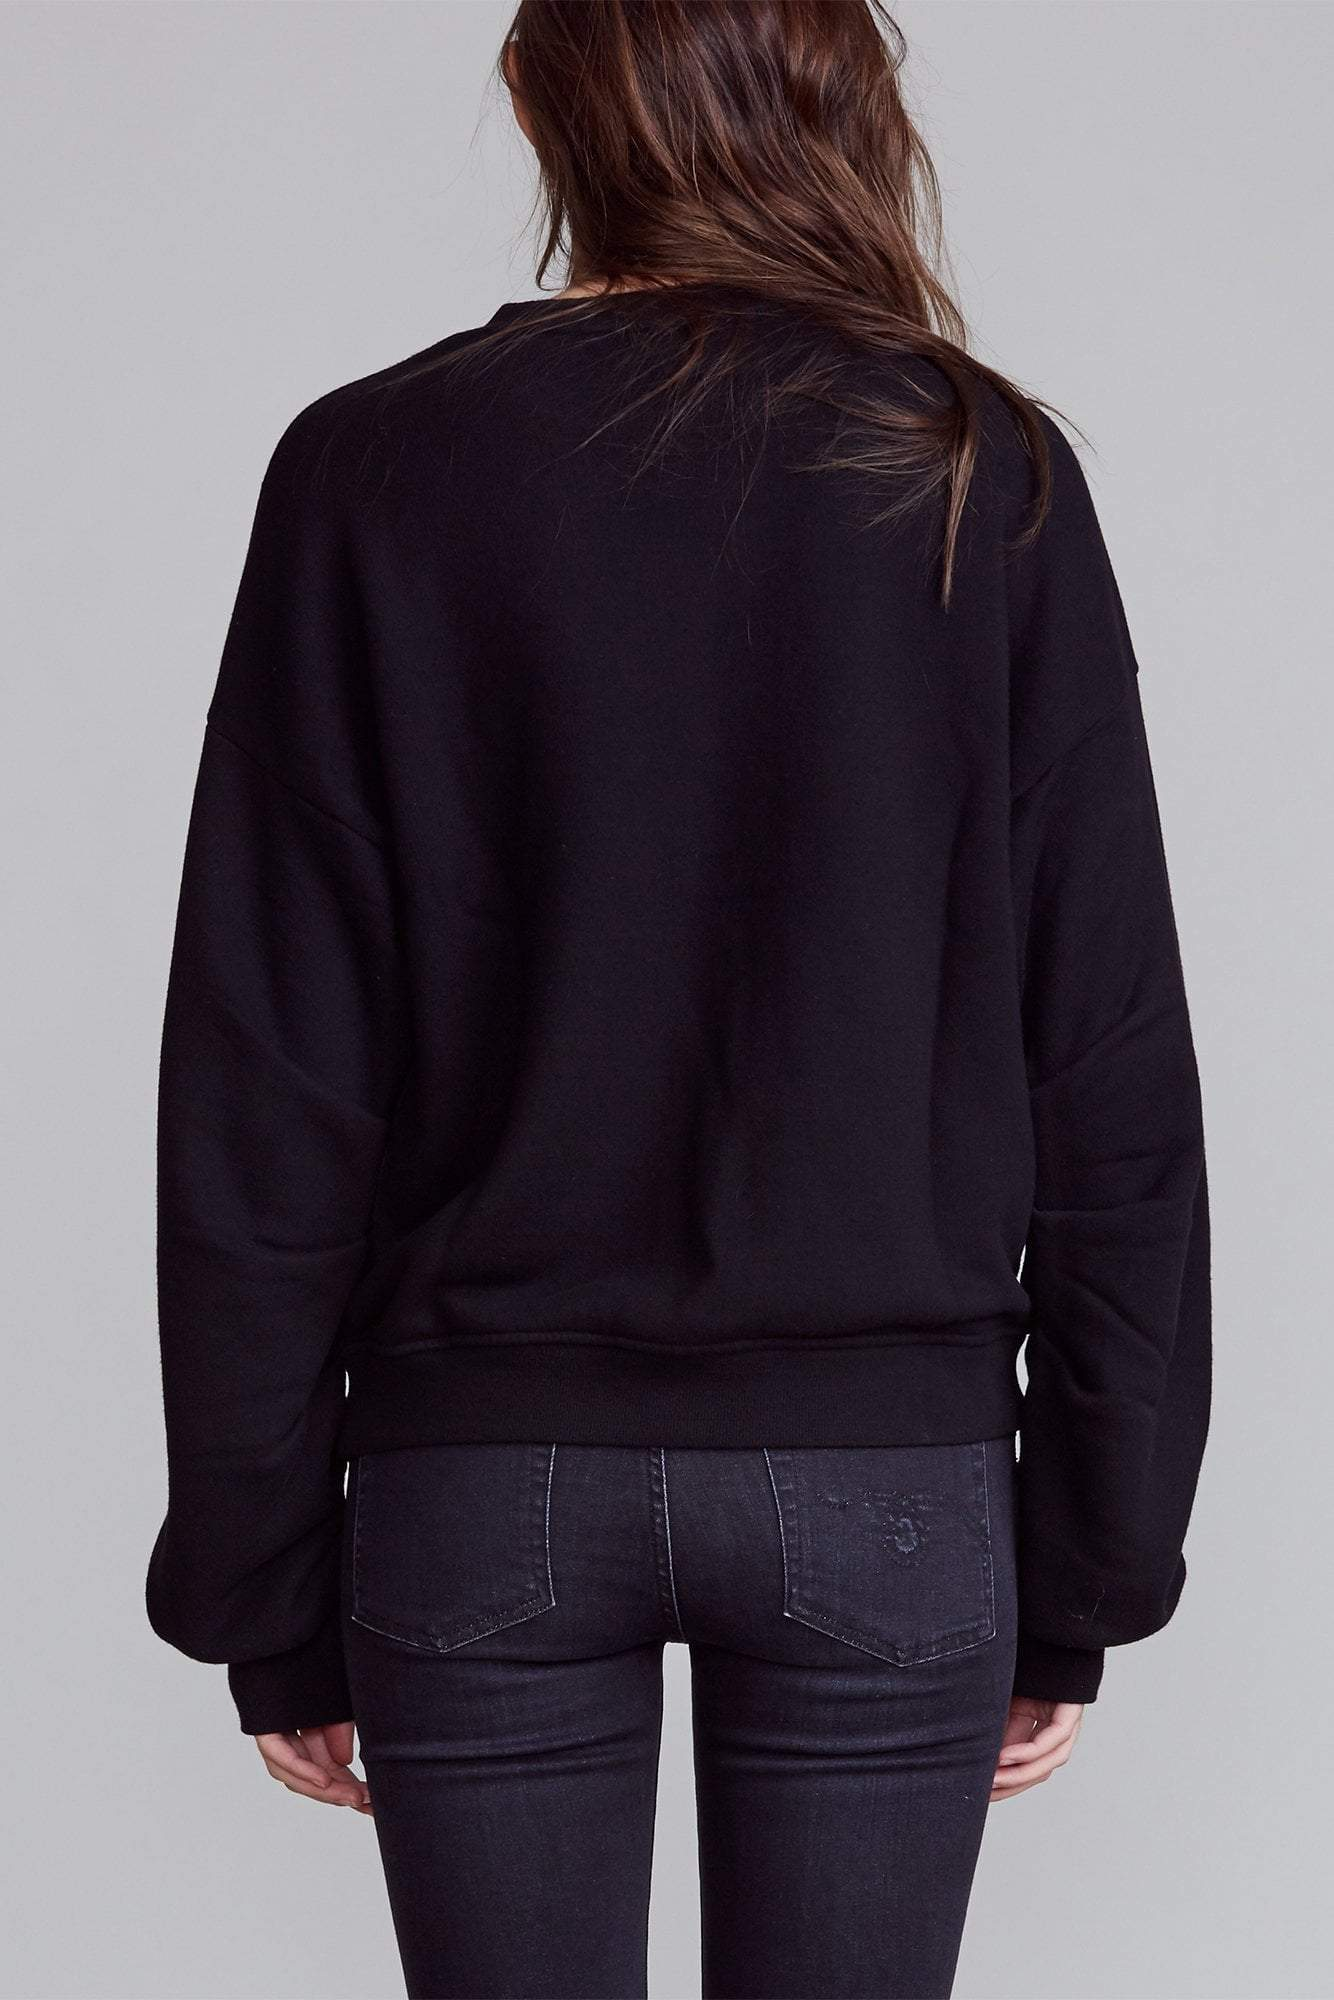 Sell Your Soul Pleated Sleeve Sweatshirt